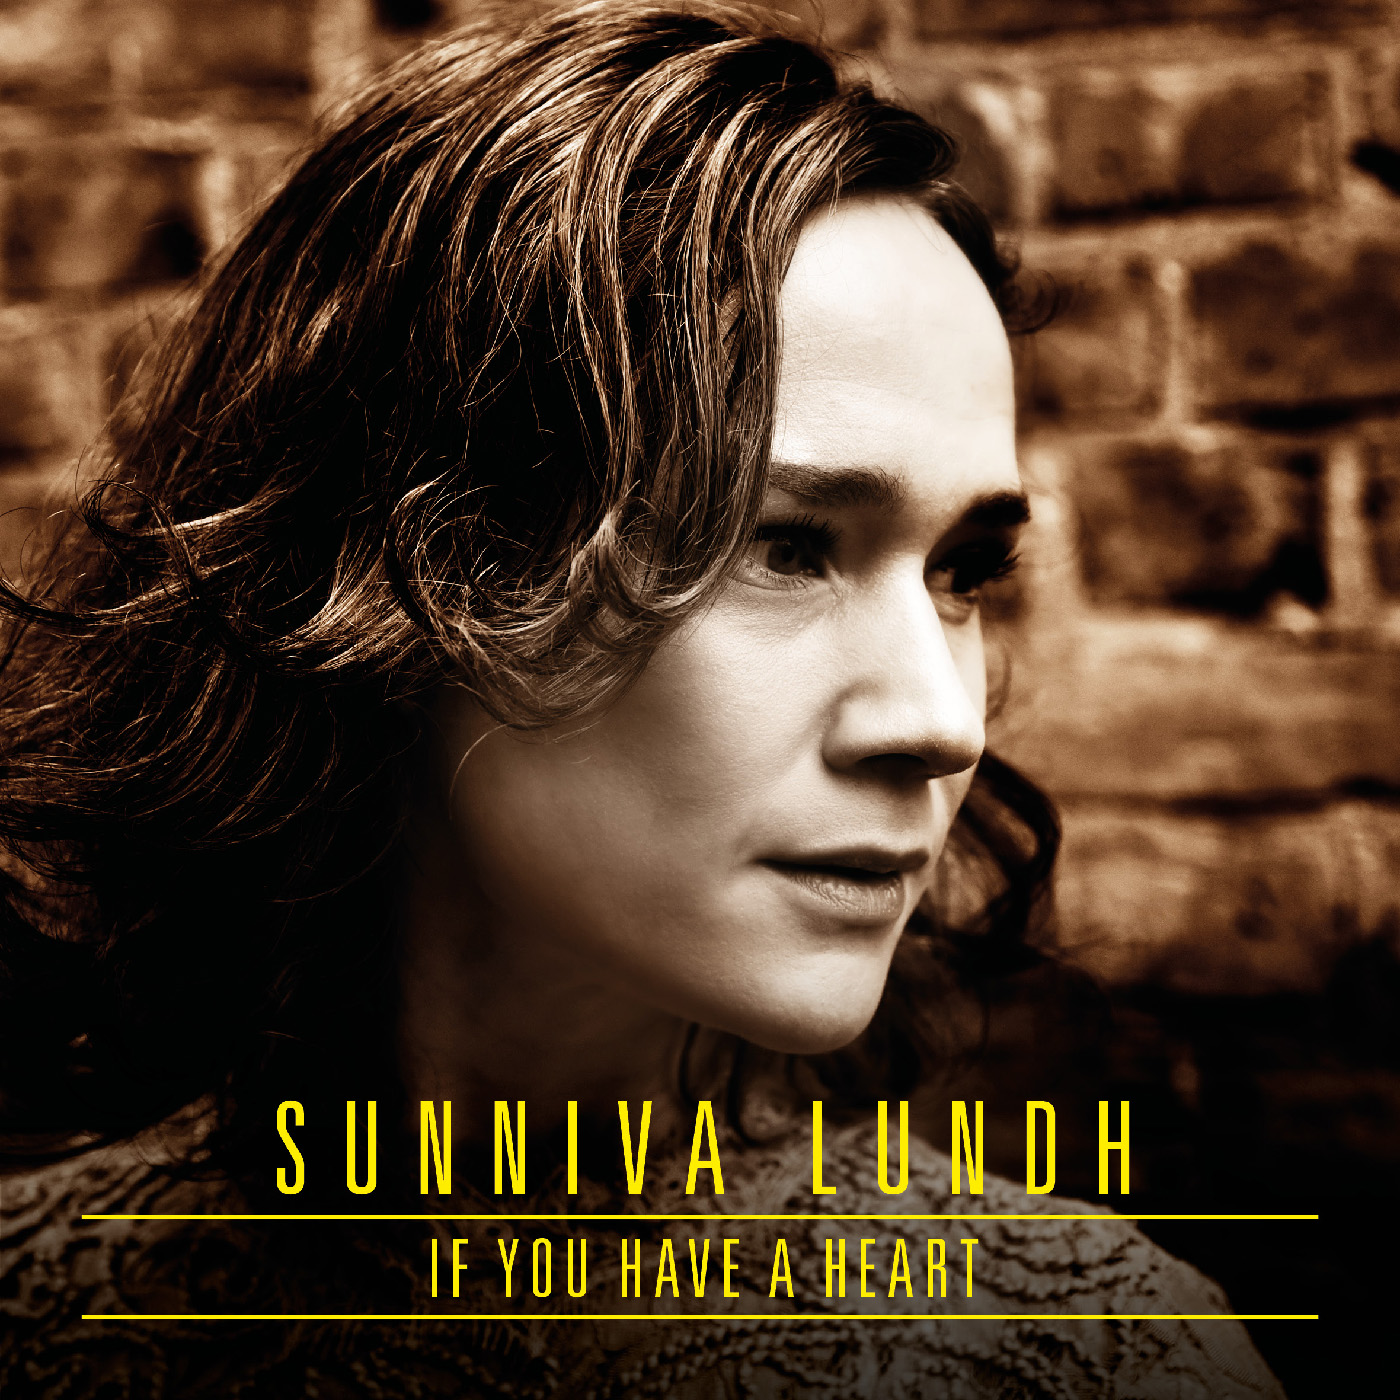 sunniva lundh - if you have a heart radio-edit